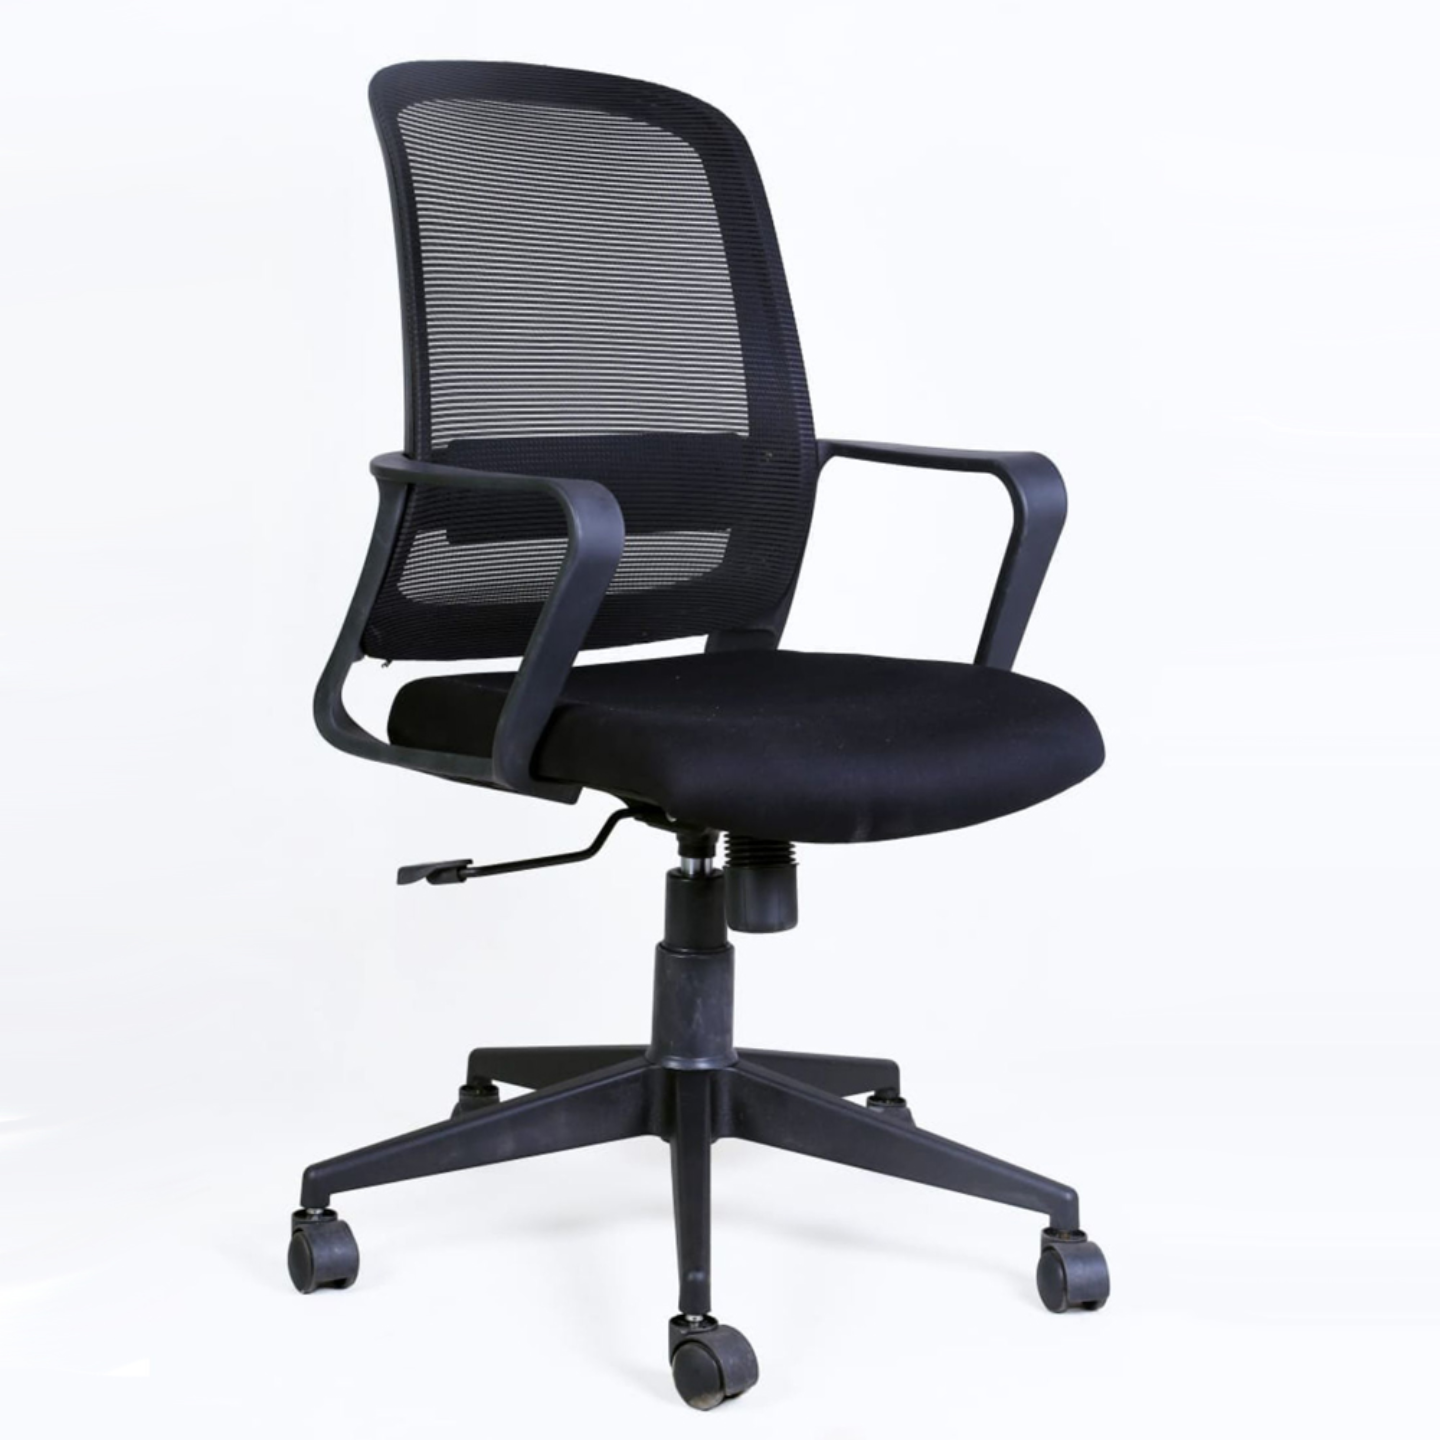 Low Back Office Chair Jane (B) LB